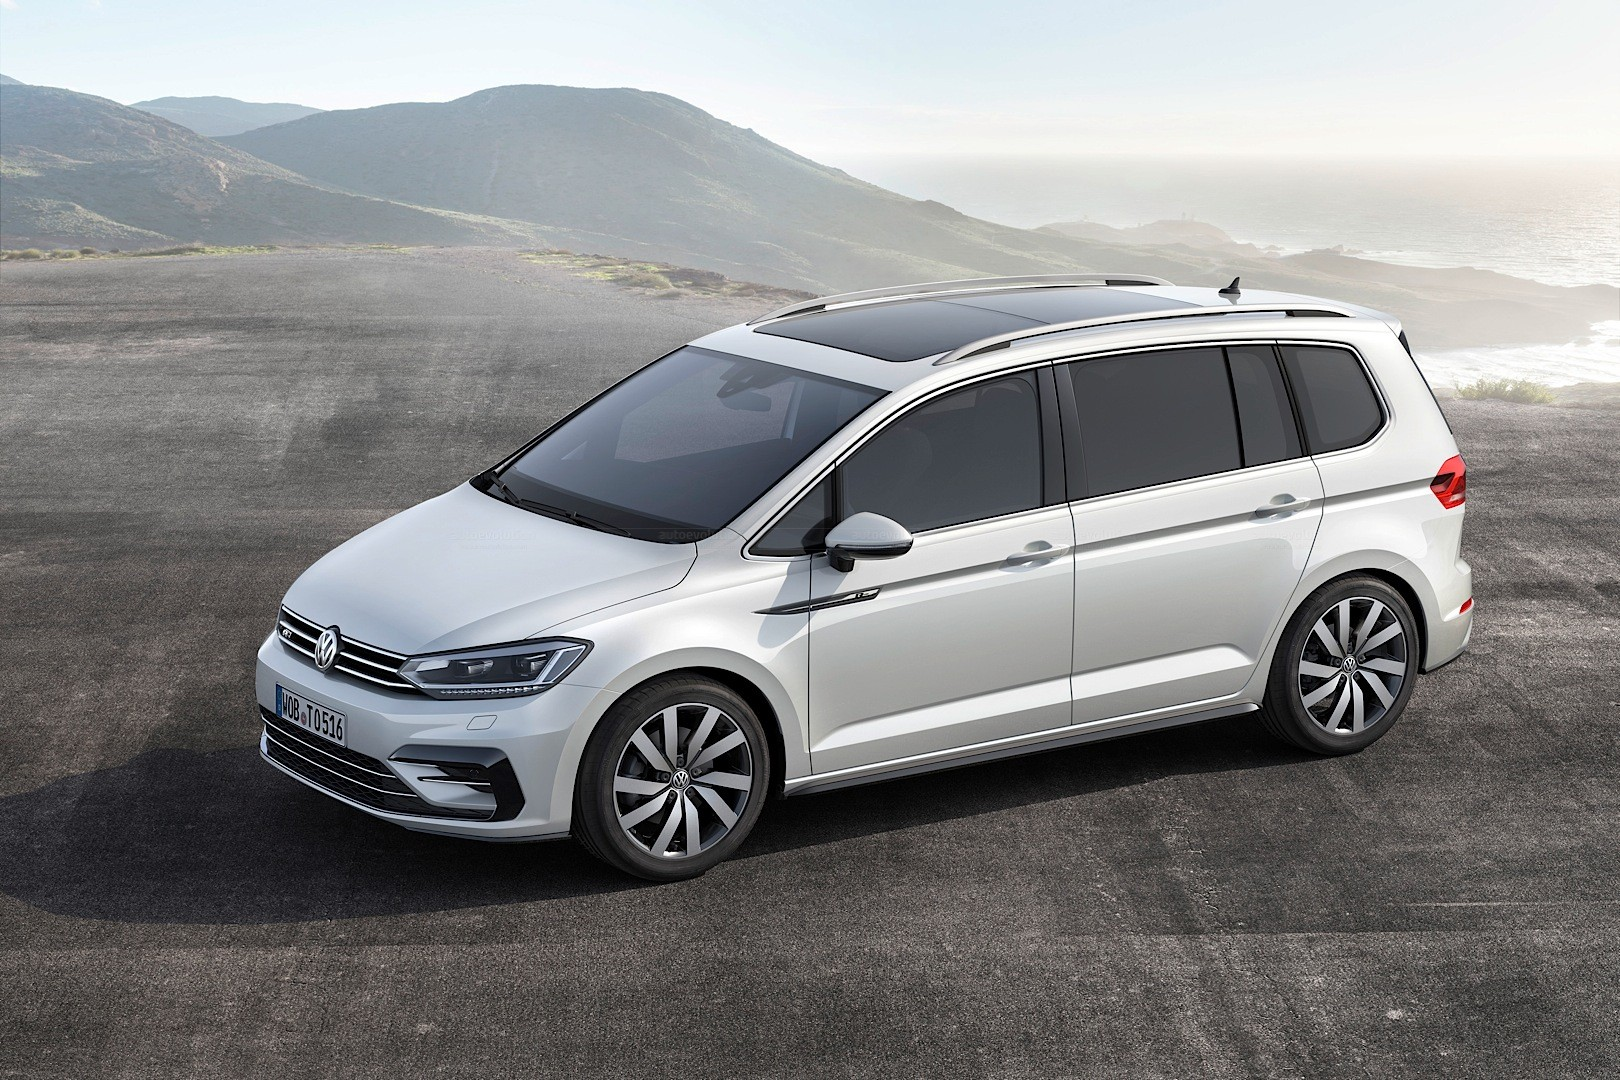 2016 volkswagen touran gets 1 8 tsi 180 hp and 2 0 tdi 190 hp engines autoevolution